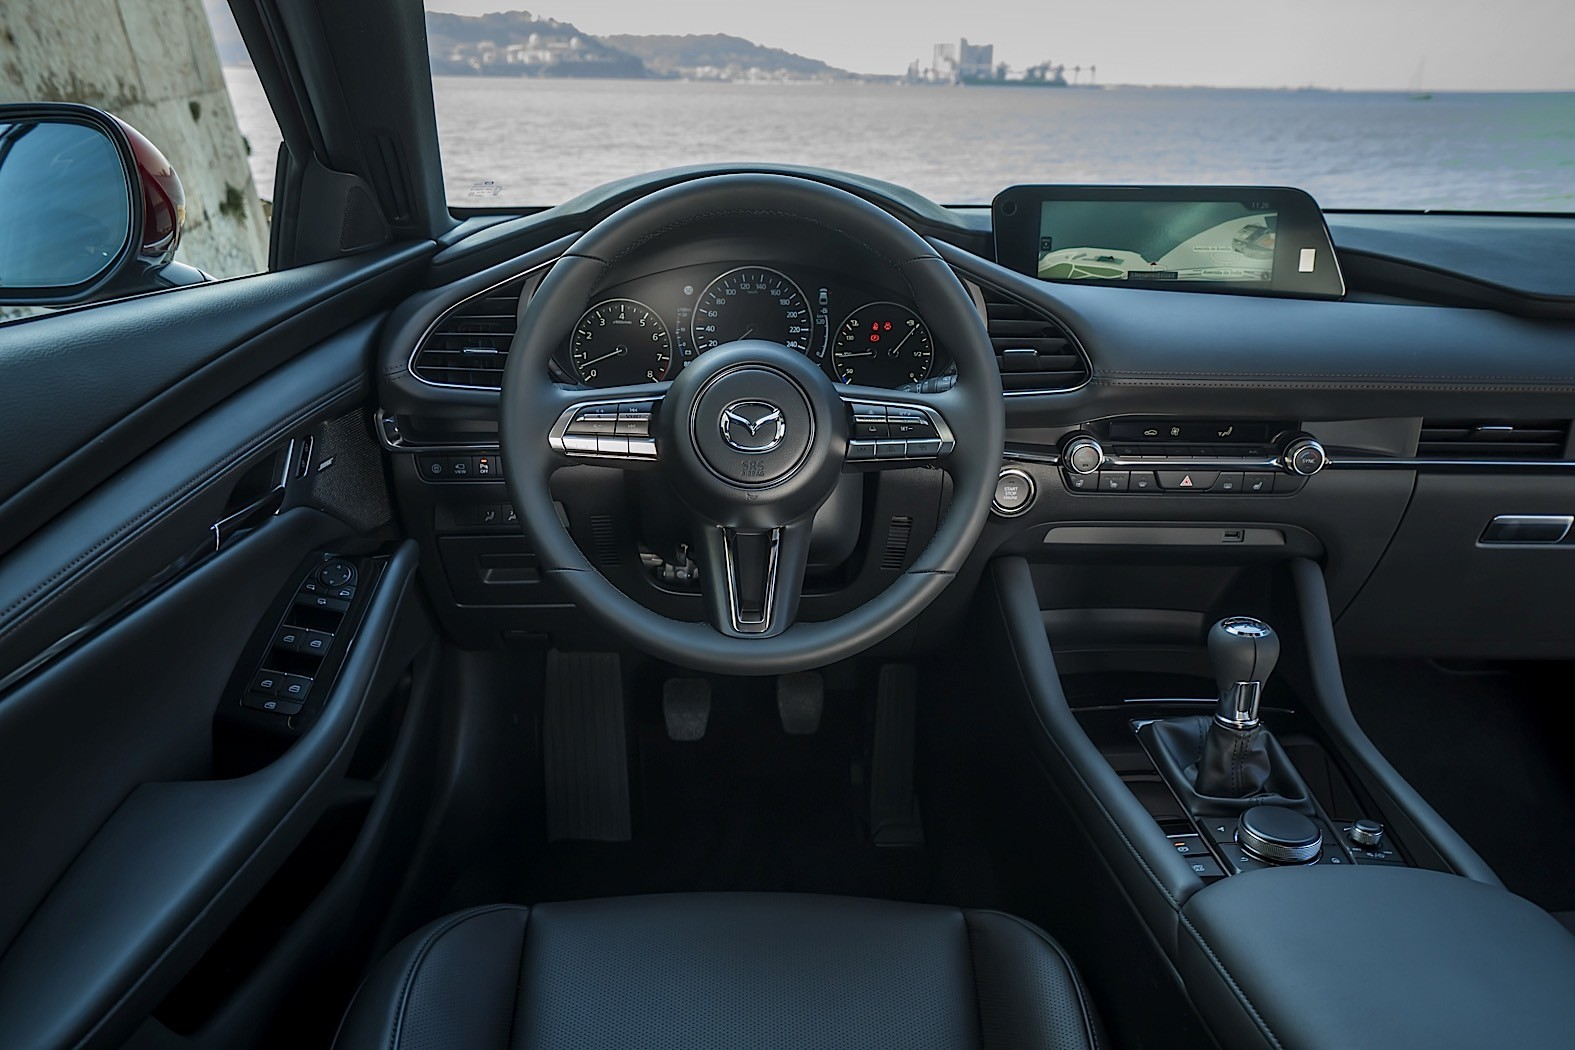 2021 Mazda3 Turbo Revealed With SkyActiv-G 2.5T Engine ...